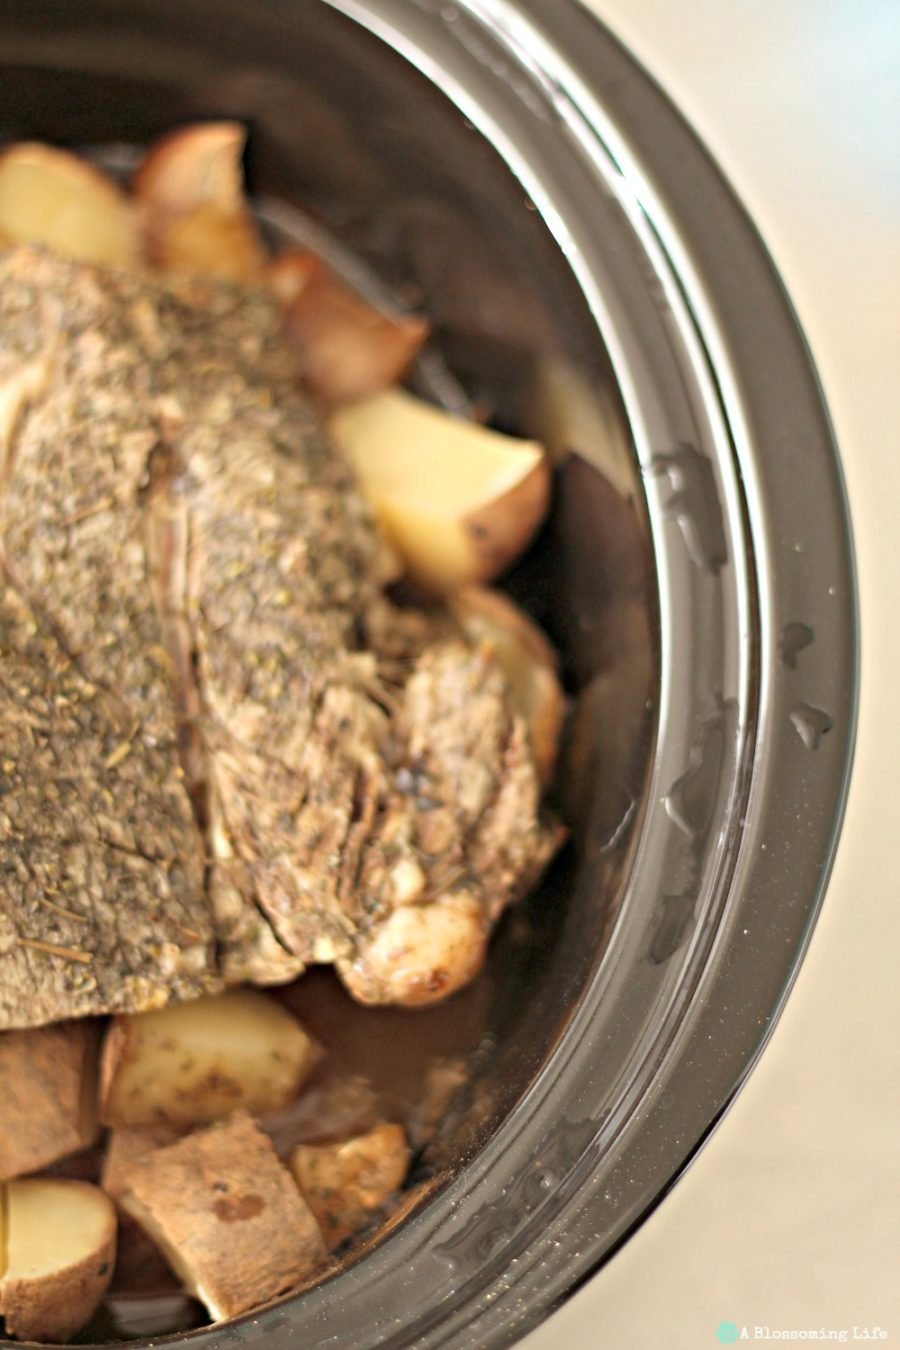 pot roast with carrots in potatoes in a slow cooker